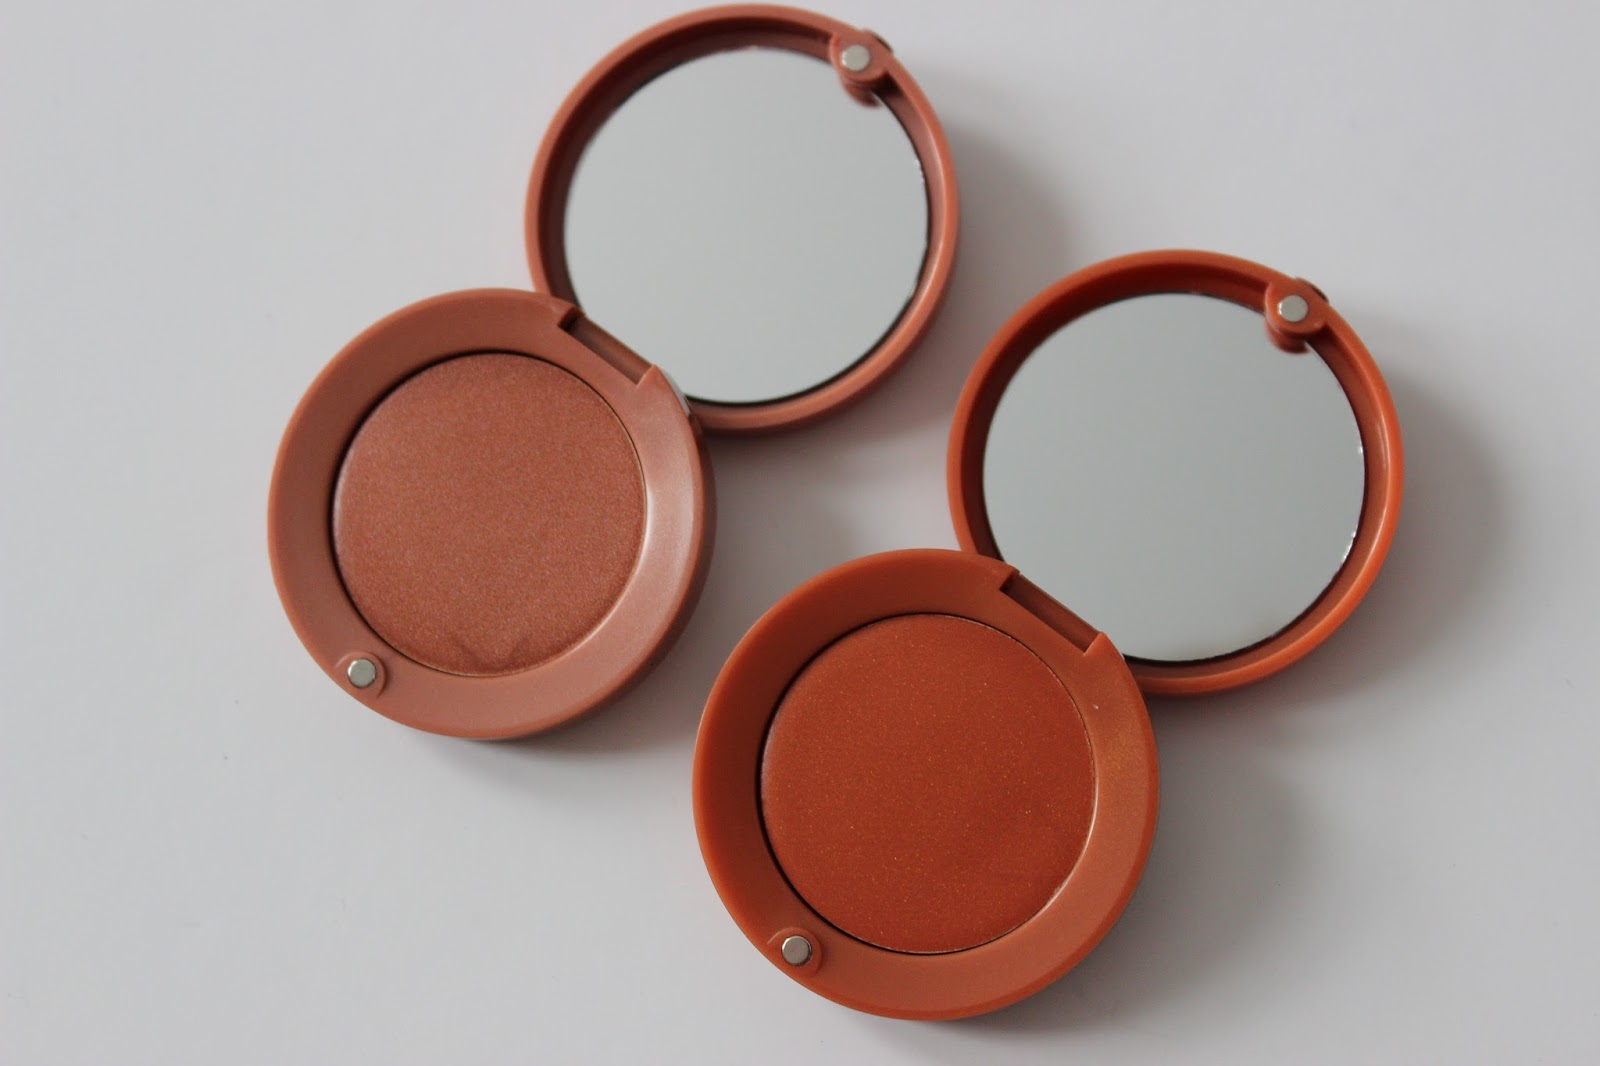 Bourjois sun blush shades 05 and 06